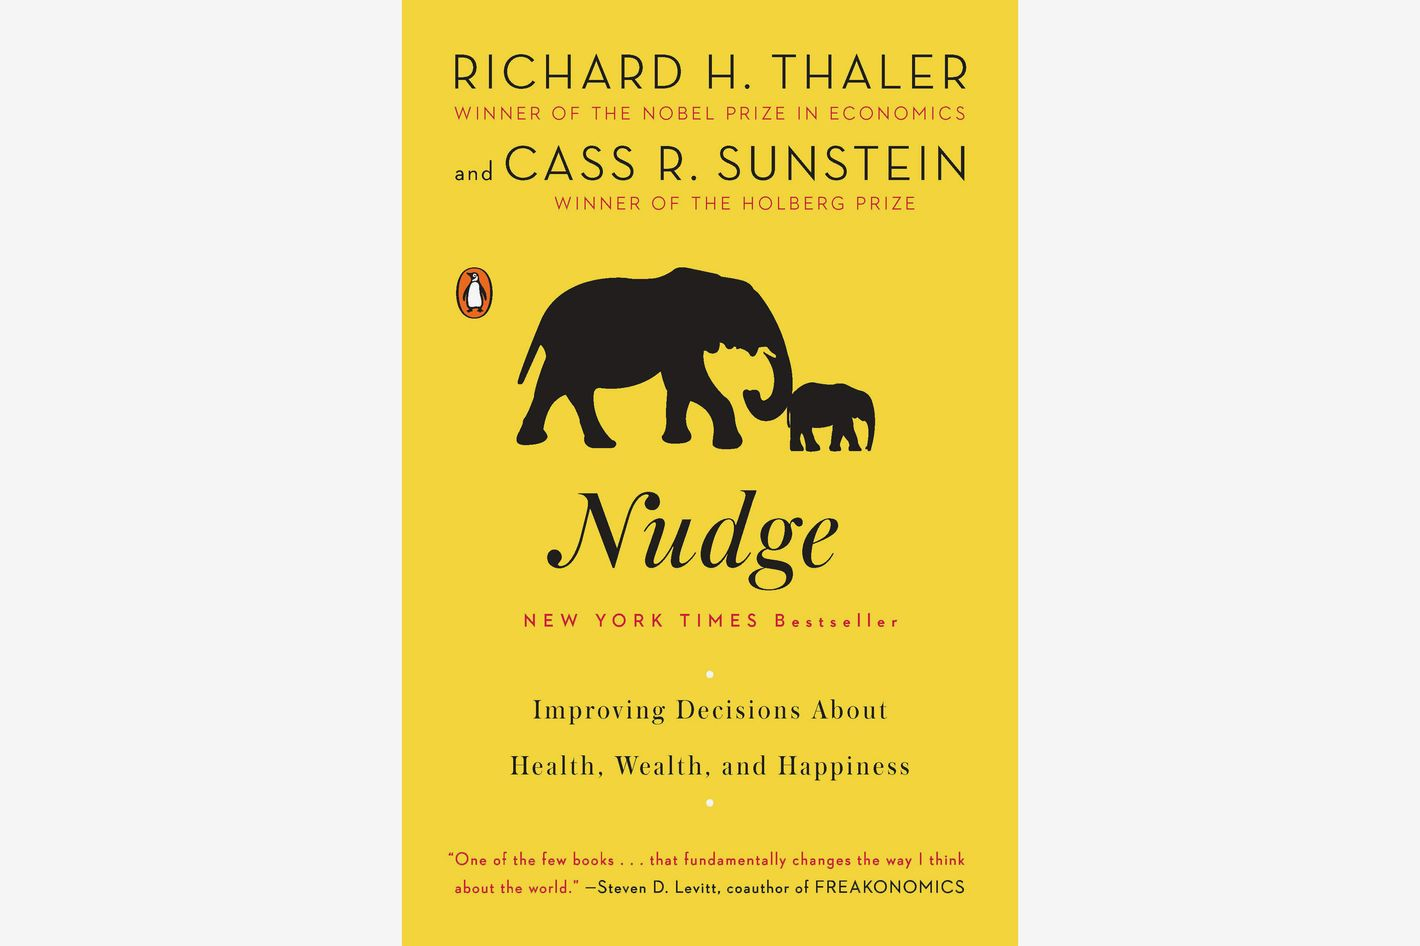 Nudge: Improving Decisions About Health, Wealth, and Happiness, by Richard H. Thaler & Cass R. Sunstein